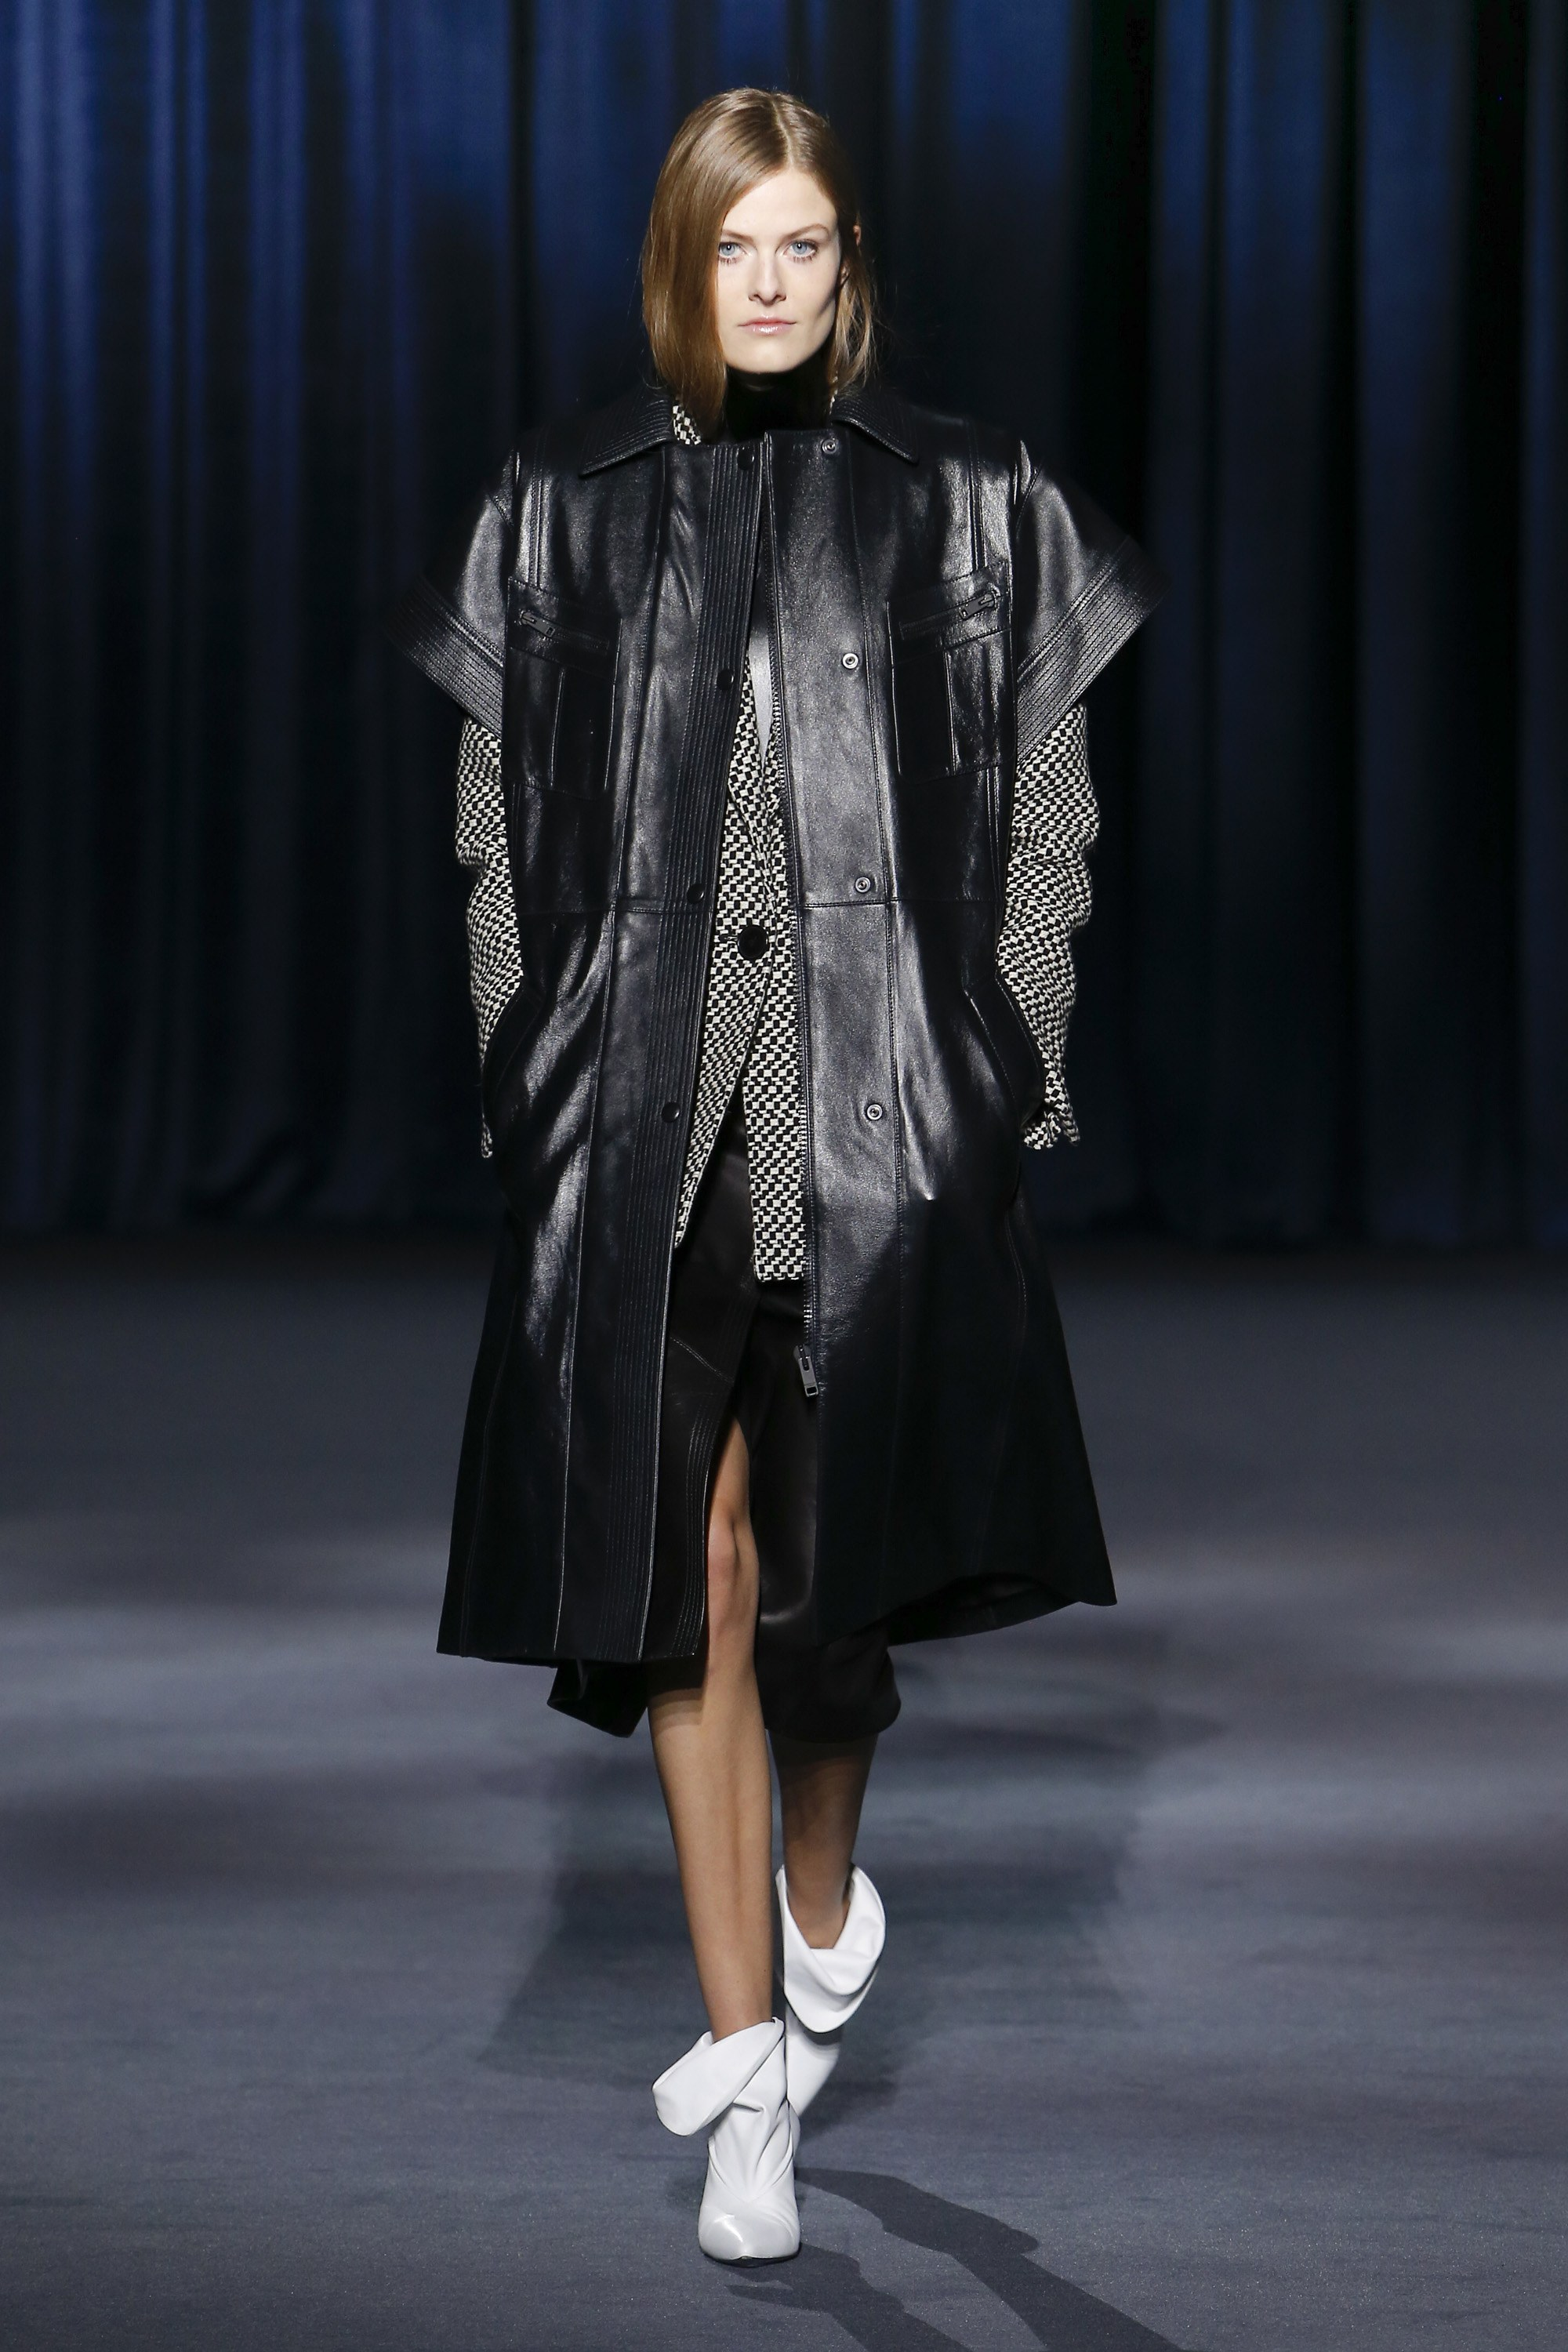 Givenchy Ready-to-Wear Fall 2018  - Now, there's an interesting thought layering the leather gilet over the coat